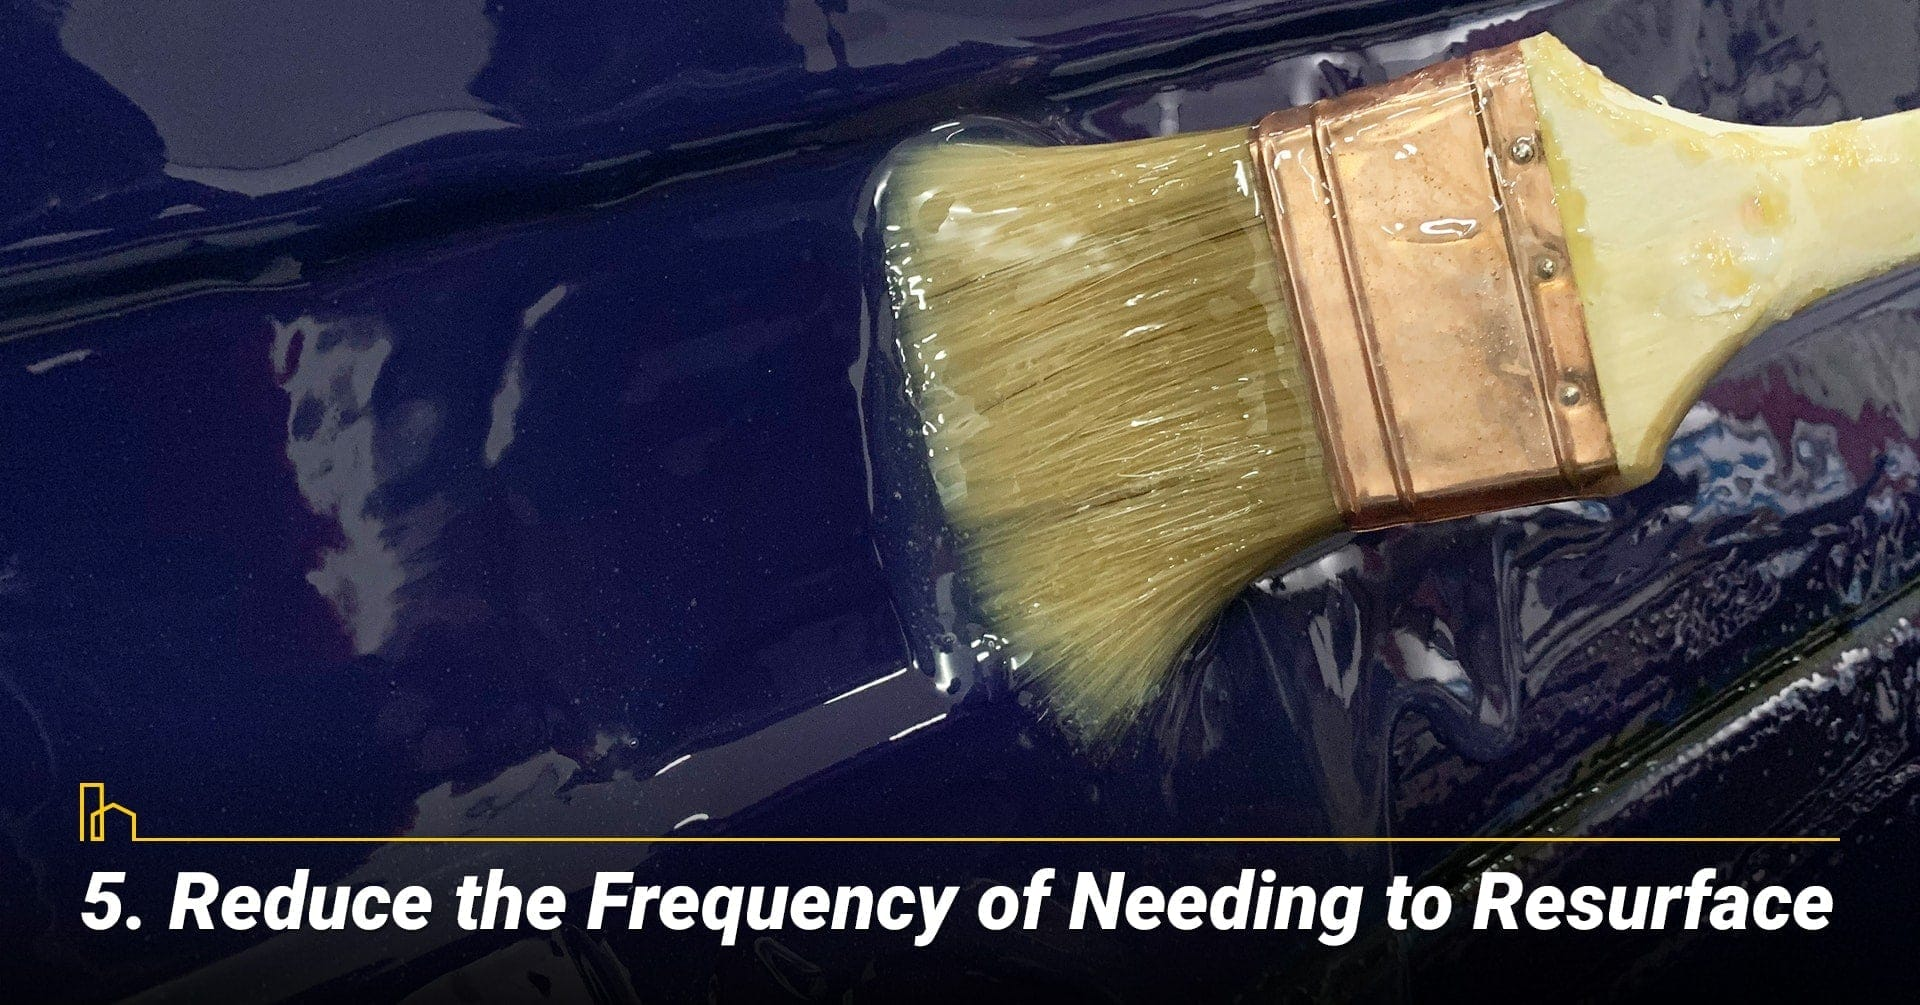 Reduce the Frequency of Needing to Resurface, prolong the life of the pool